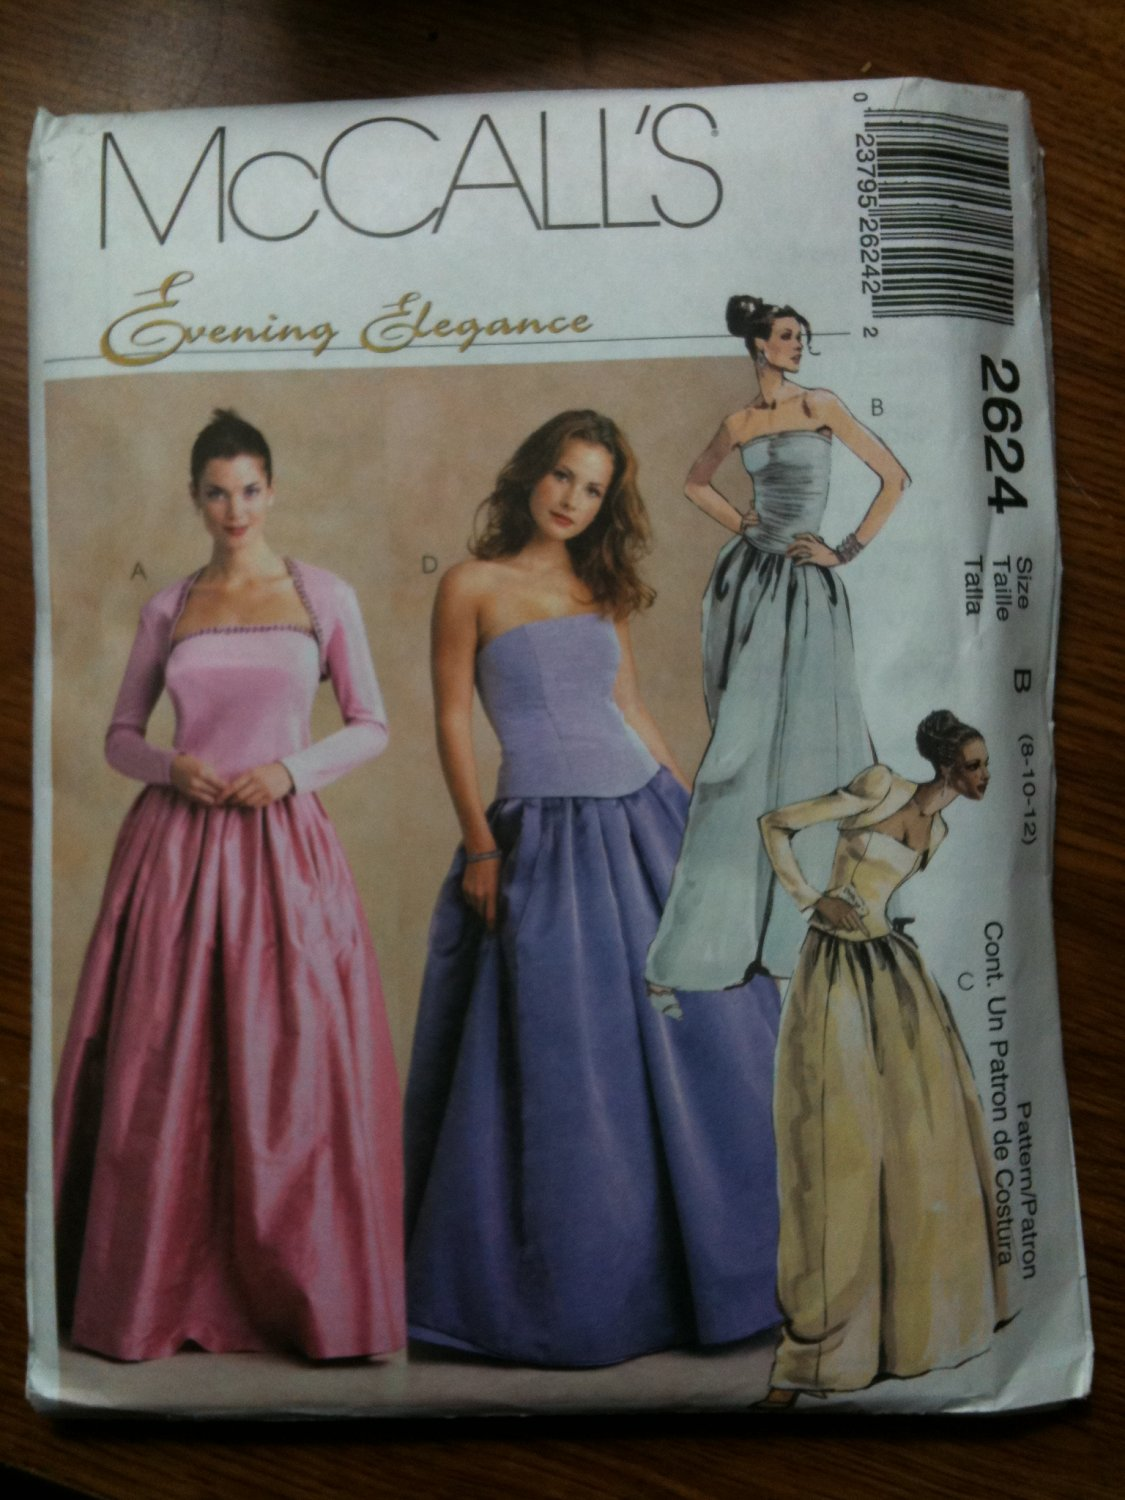 McCall's 2624 Misses' Shrug, Tops and Skirt Size B 8-10-12